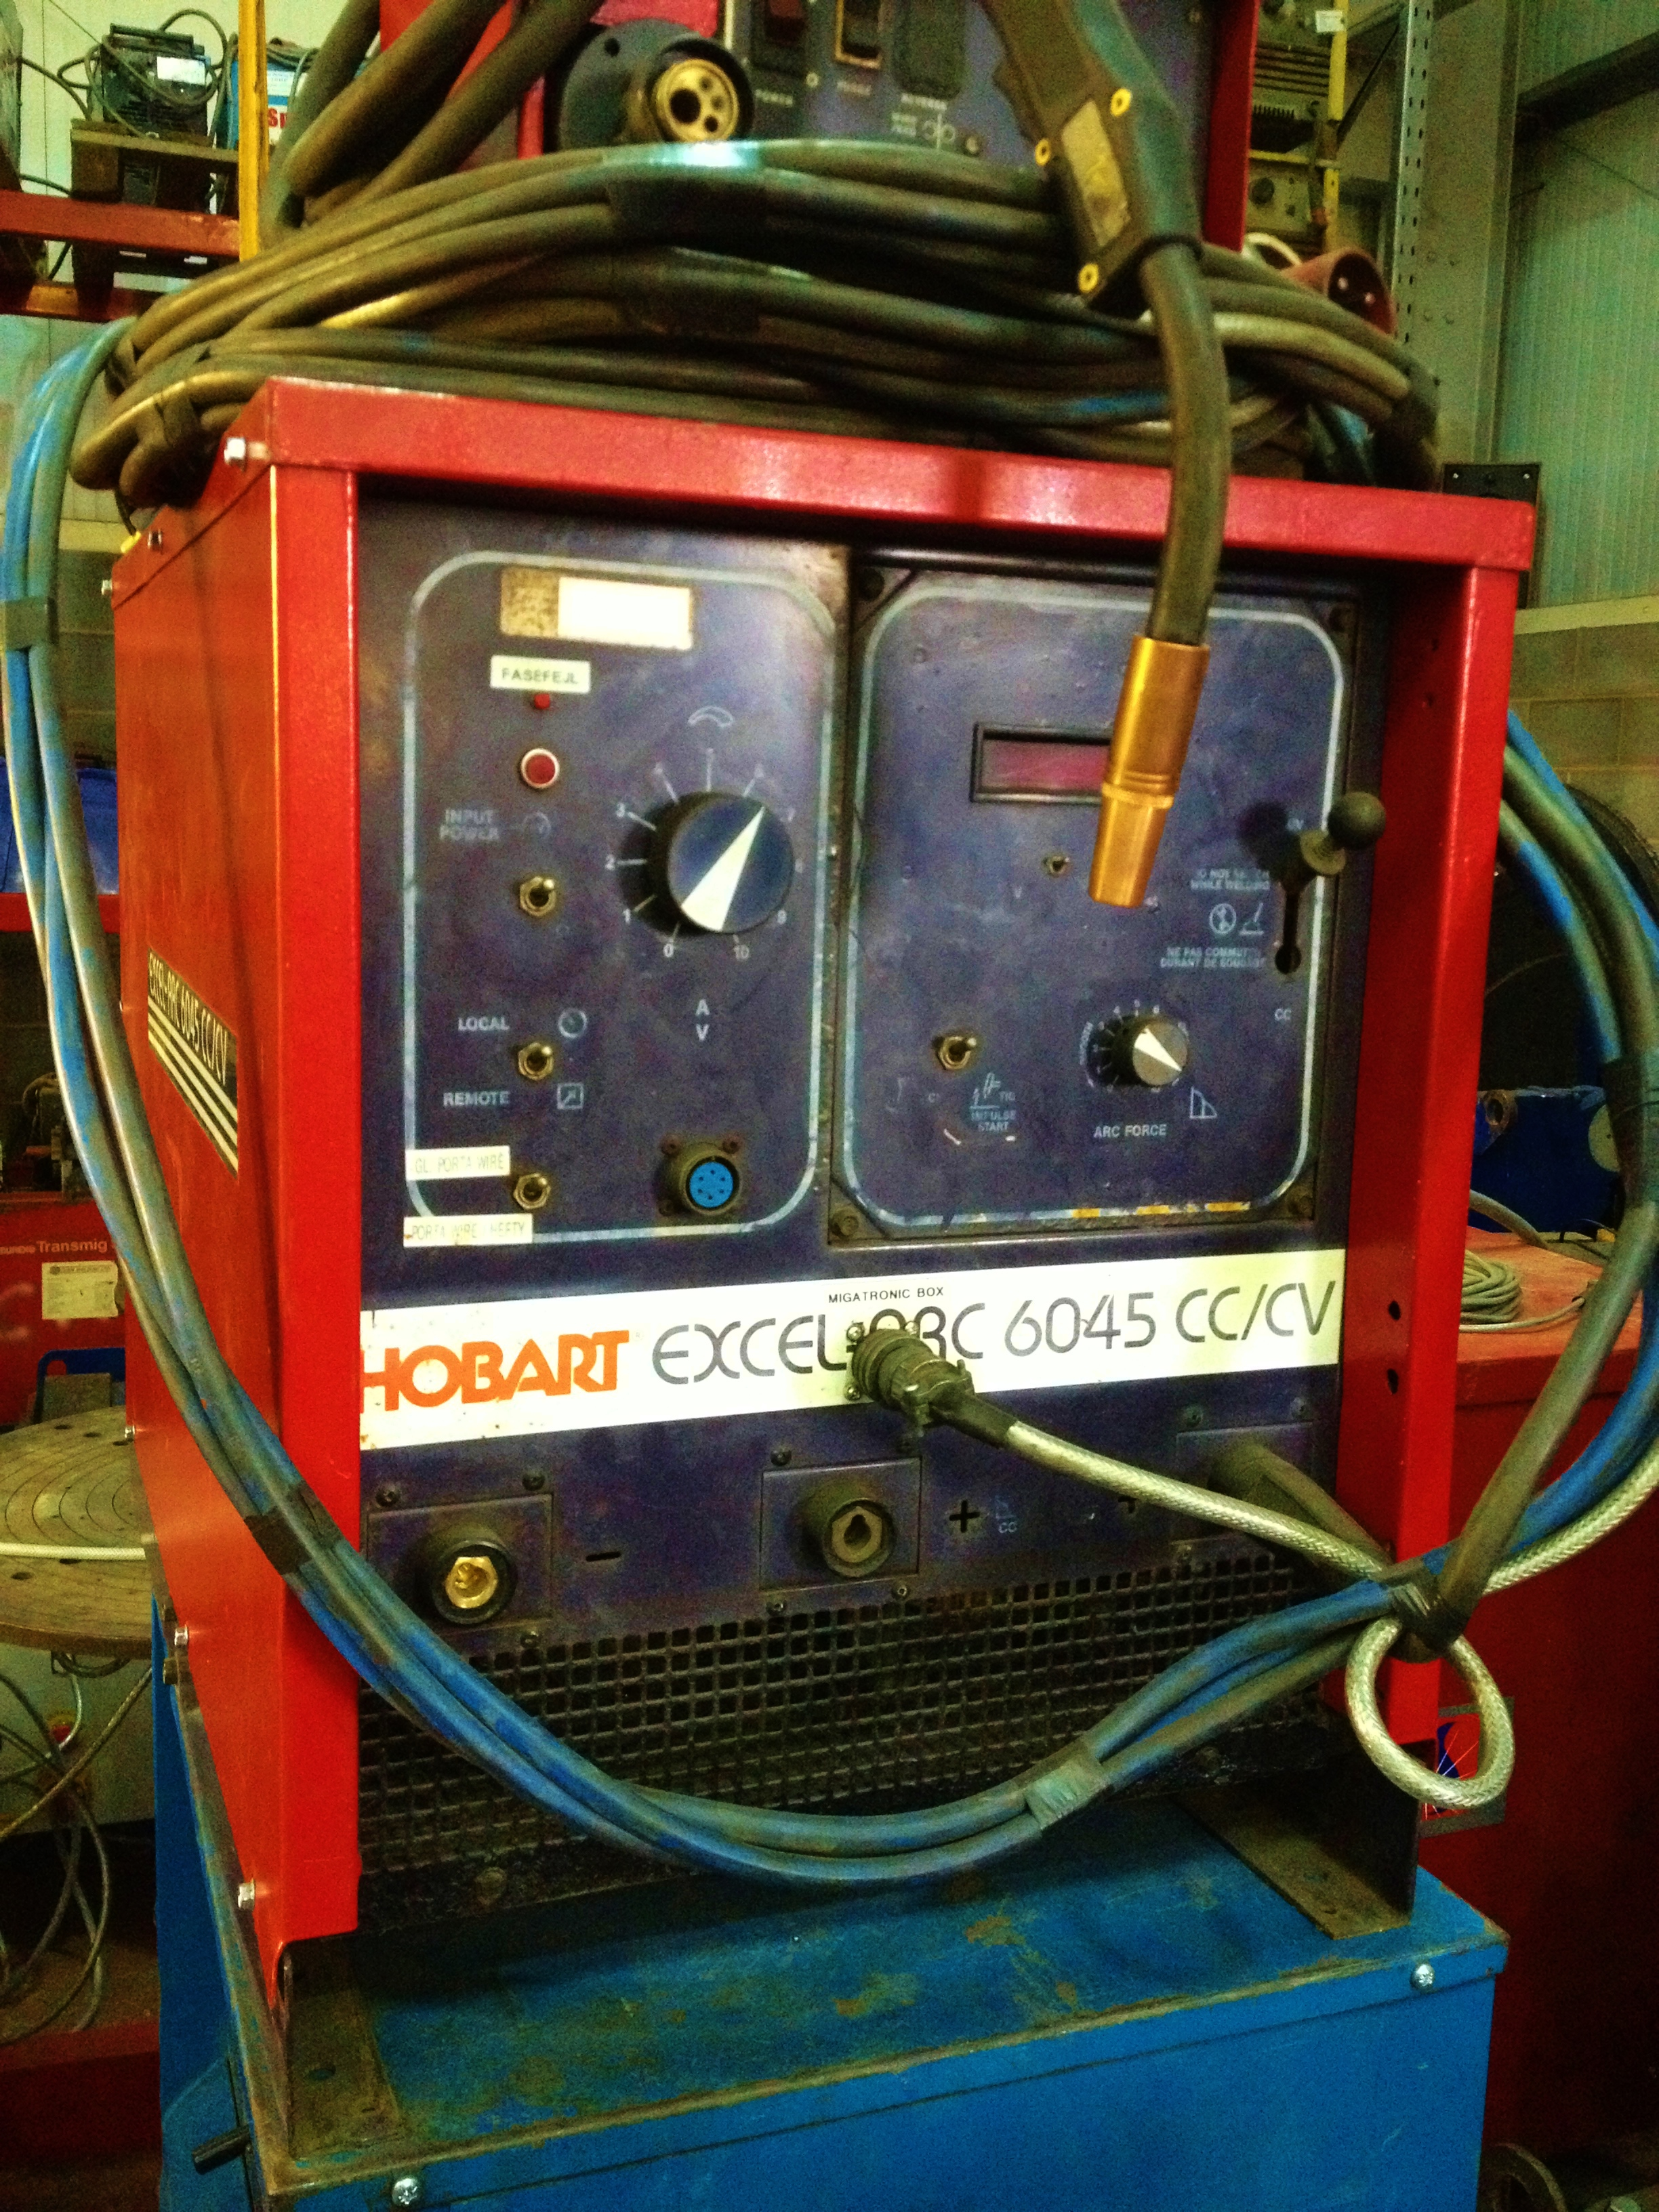 Hobart Excel Arc 6045 Mig Welding Machine With Tweco No 5 Torch 250 Welder Wiring Diagram 2